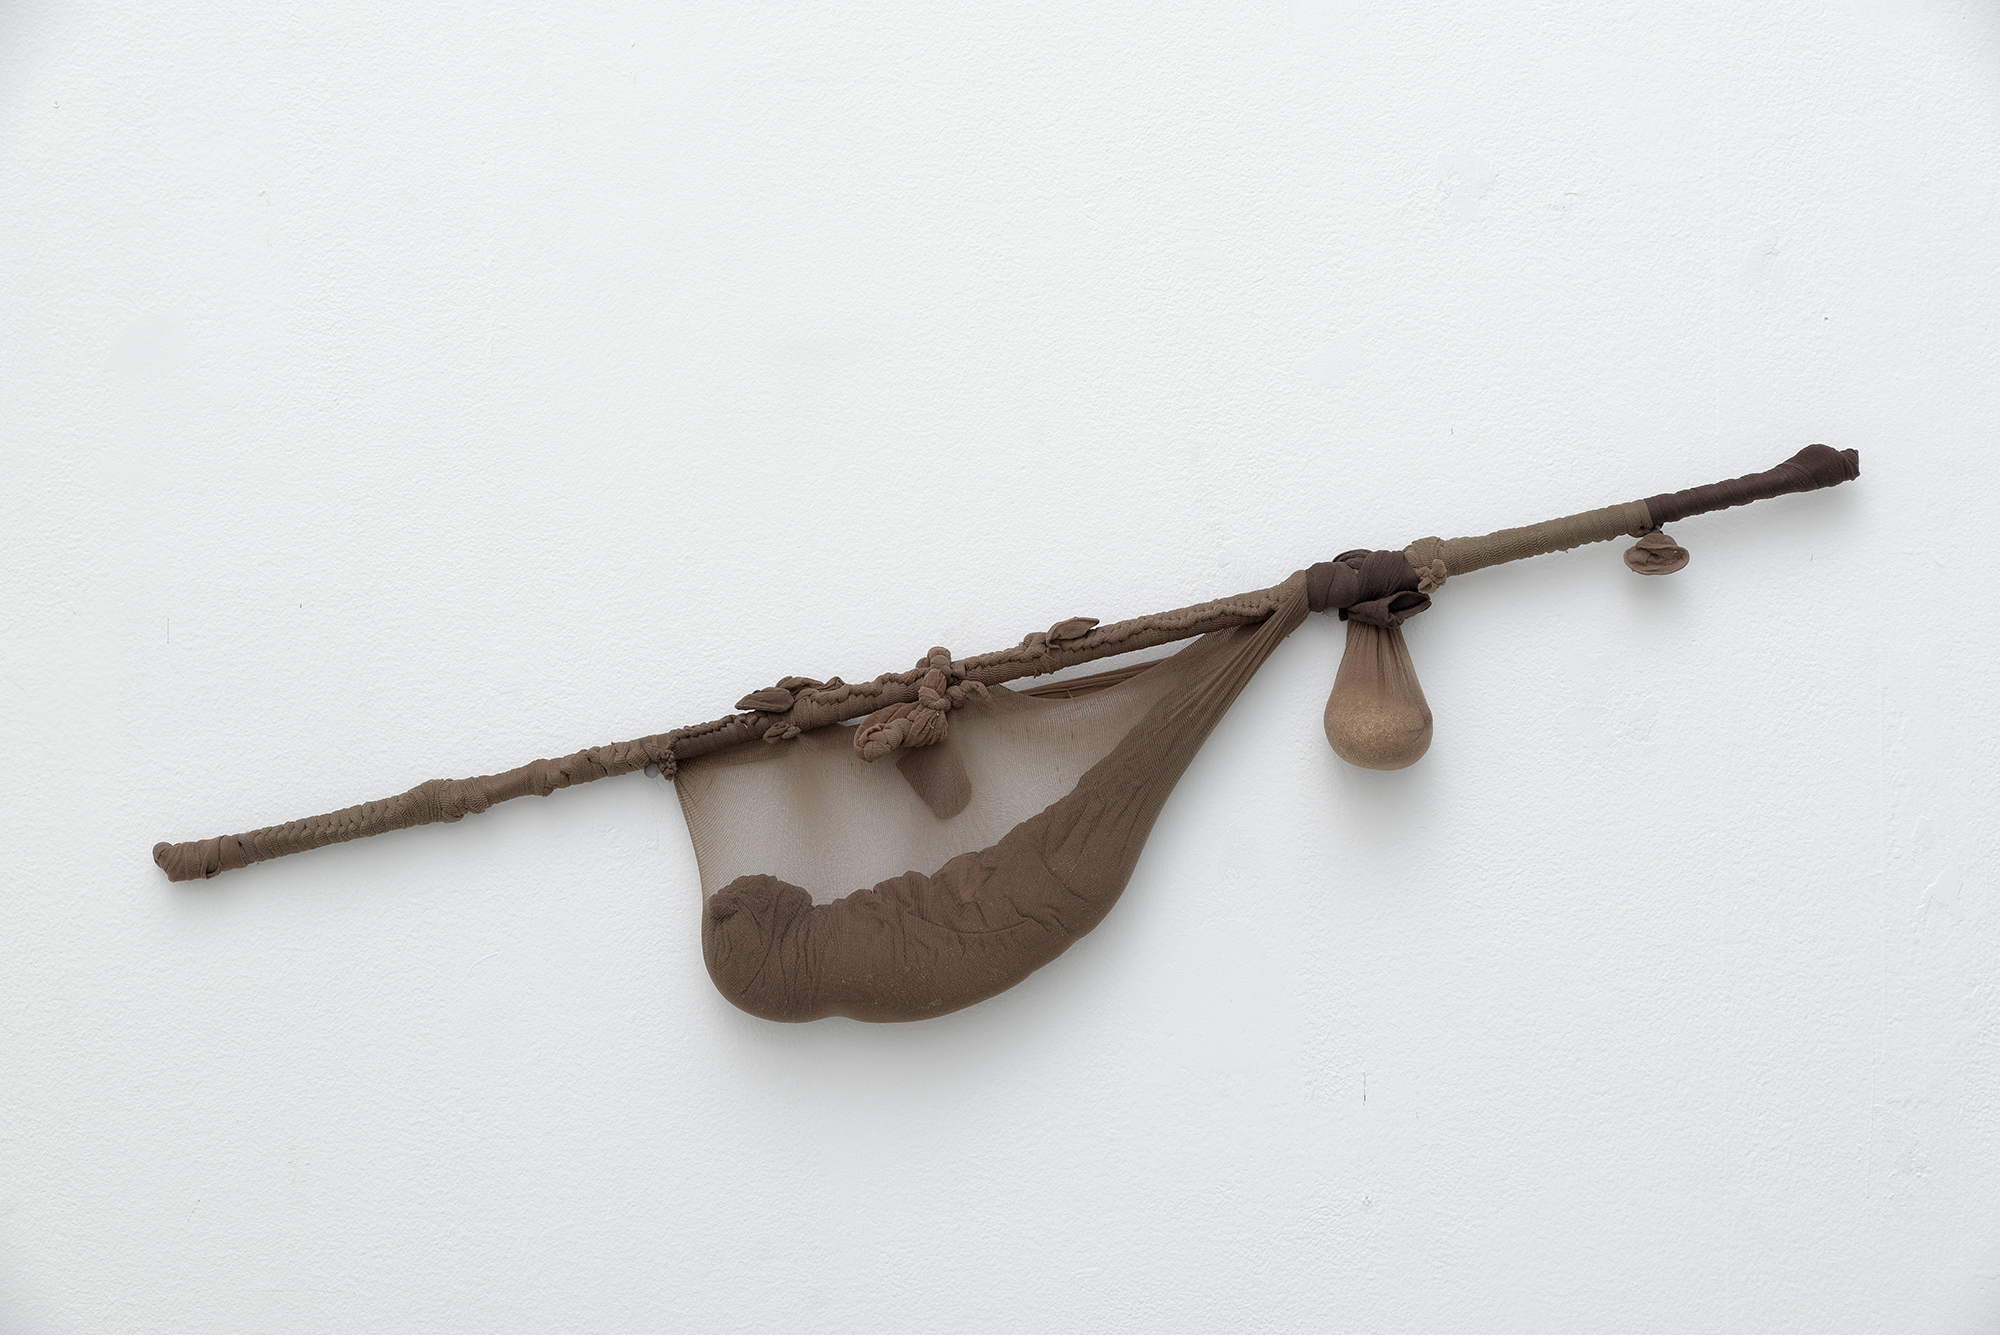 """Untitled"", 2011. Nylon Mesh, Sand, Found Object. Photo by Propecia Leigh."